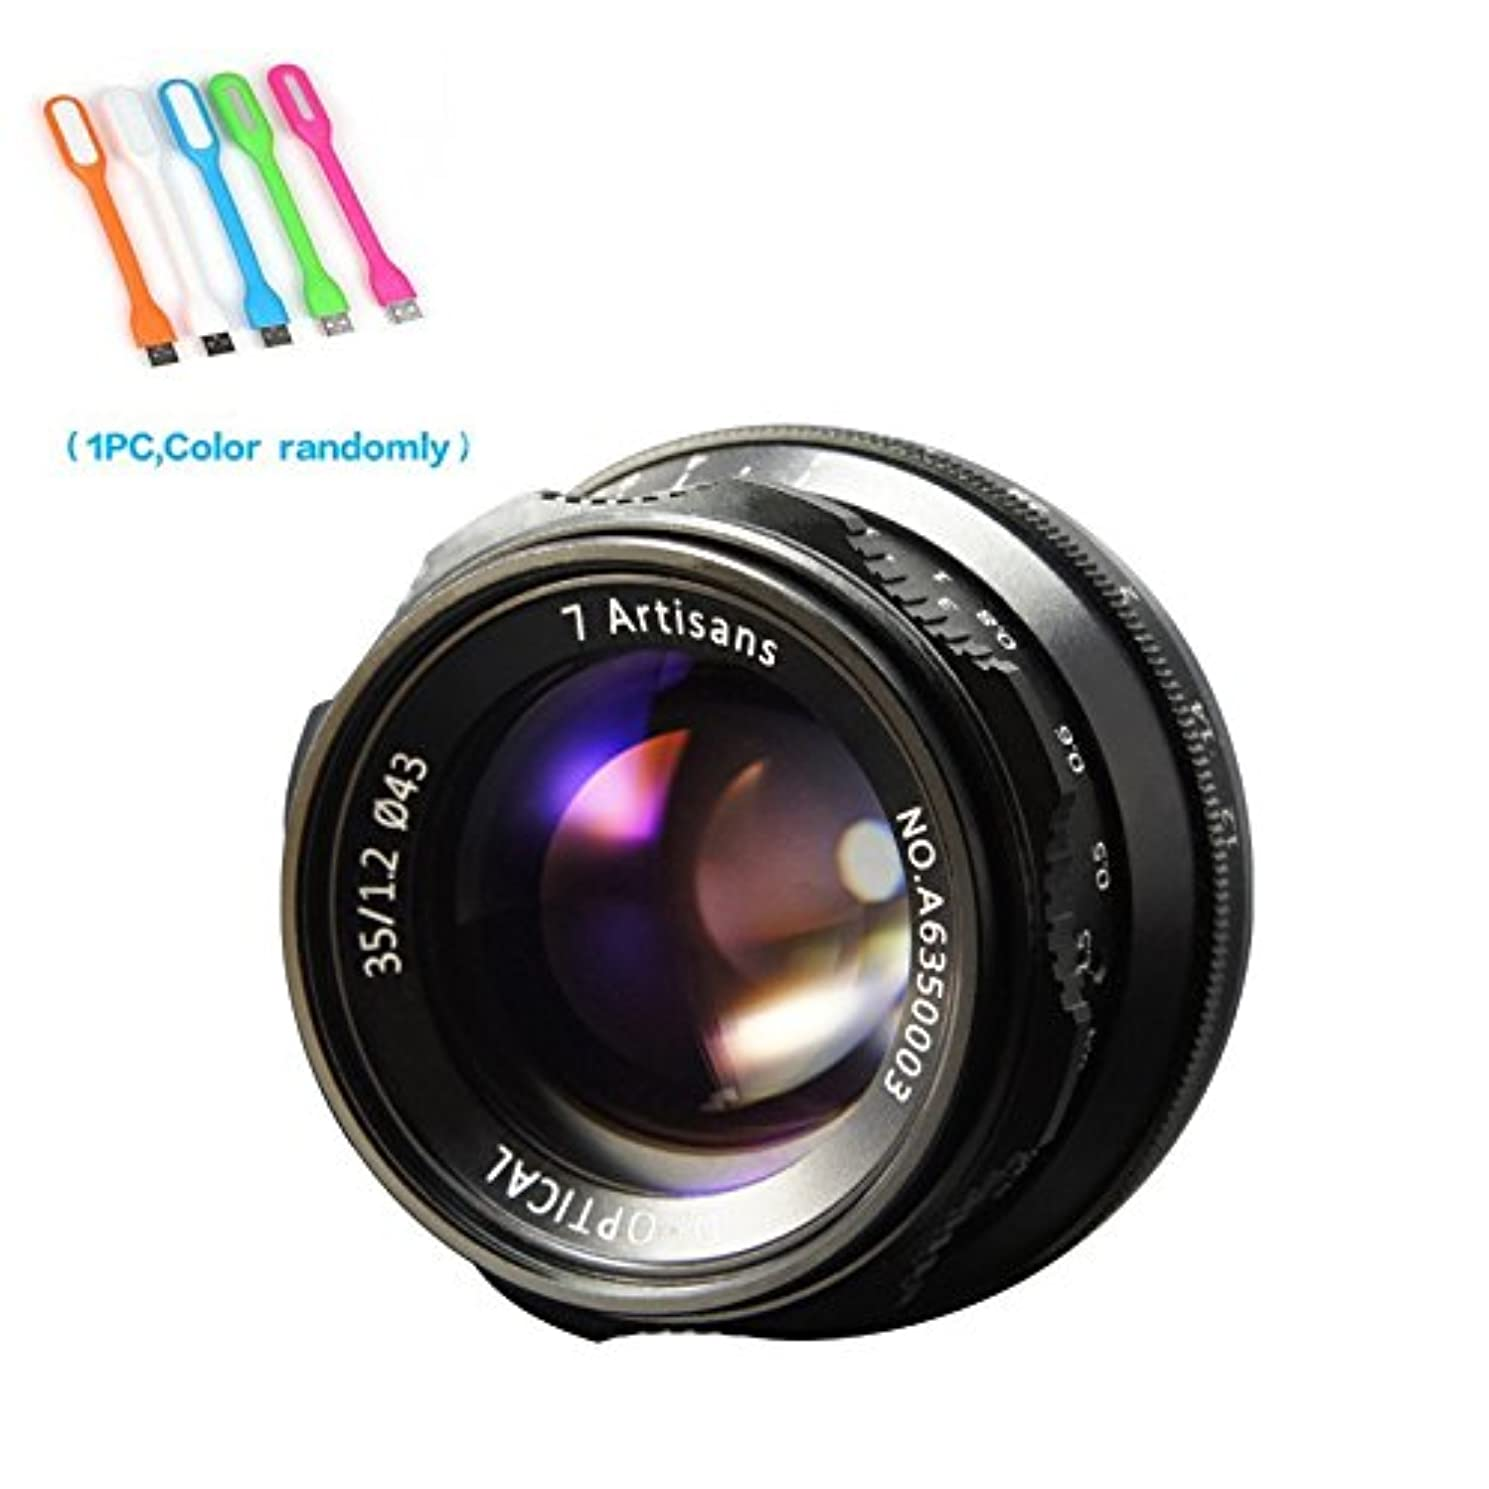 7artisans 35mm F1.2 Large Aperture Prime APS-C Manual Focus Fixed Lens for Sony E Mount Camera A7, A7II, A7R, A7RII, A7S, A7SII, A6500, A6300, A6000, A5100, A5000,NEX-3,NEX-3N,NEX-5,NEX-5T,NEX-5R/6/7